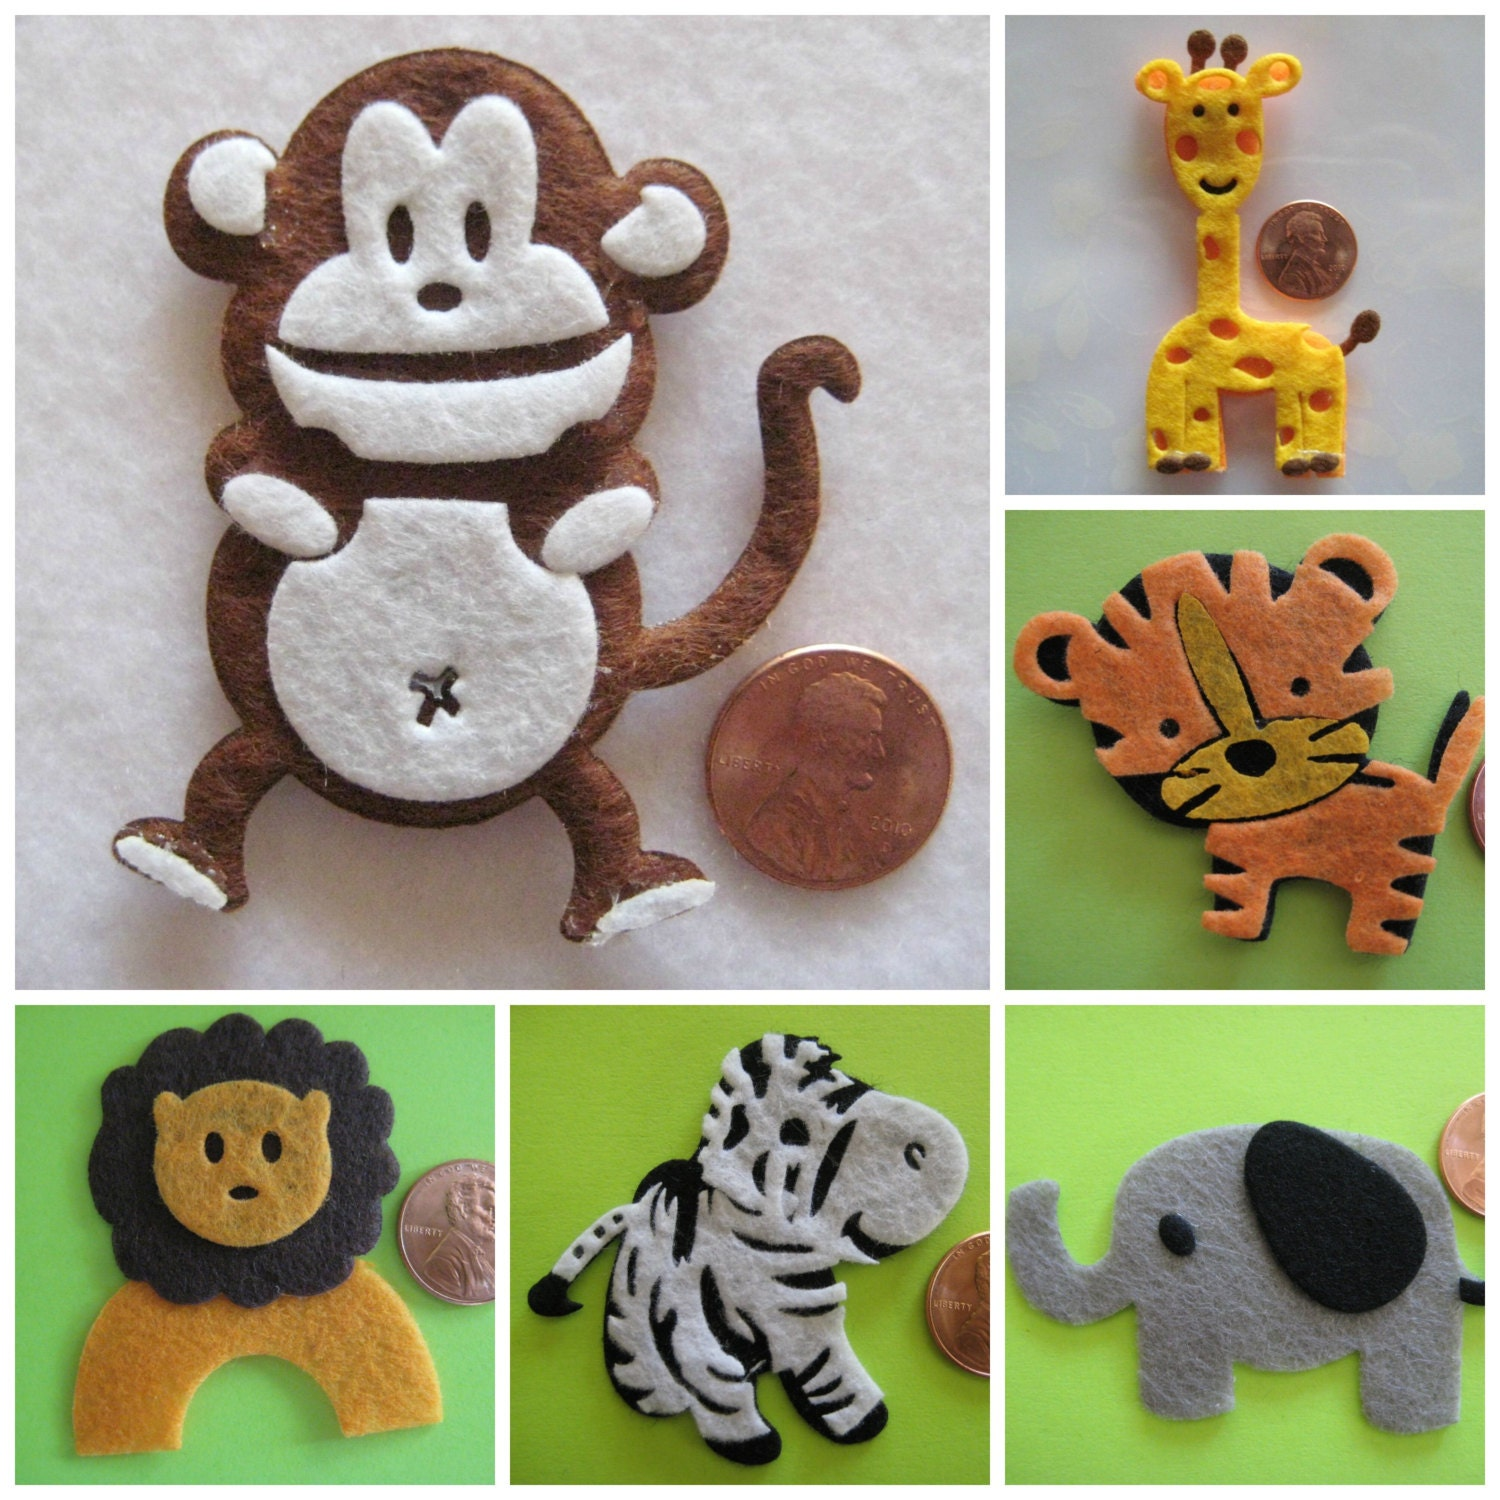 Animal ornaments - Hippo Felt Animal Ornaments For Zoo Forest Safari Jungle Theme Crafting Embellishment Party Favors 2 X 2 50 Mm X 50 Mm